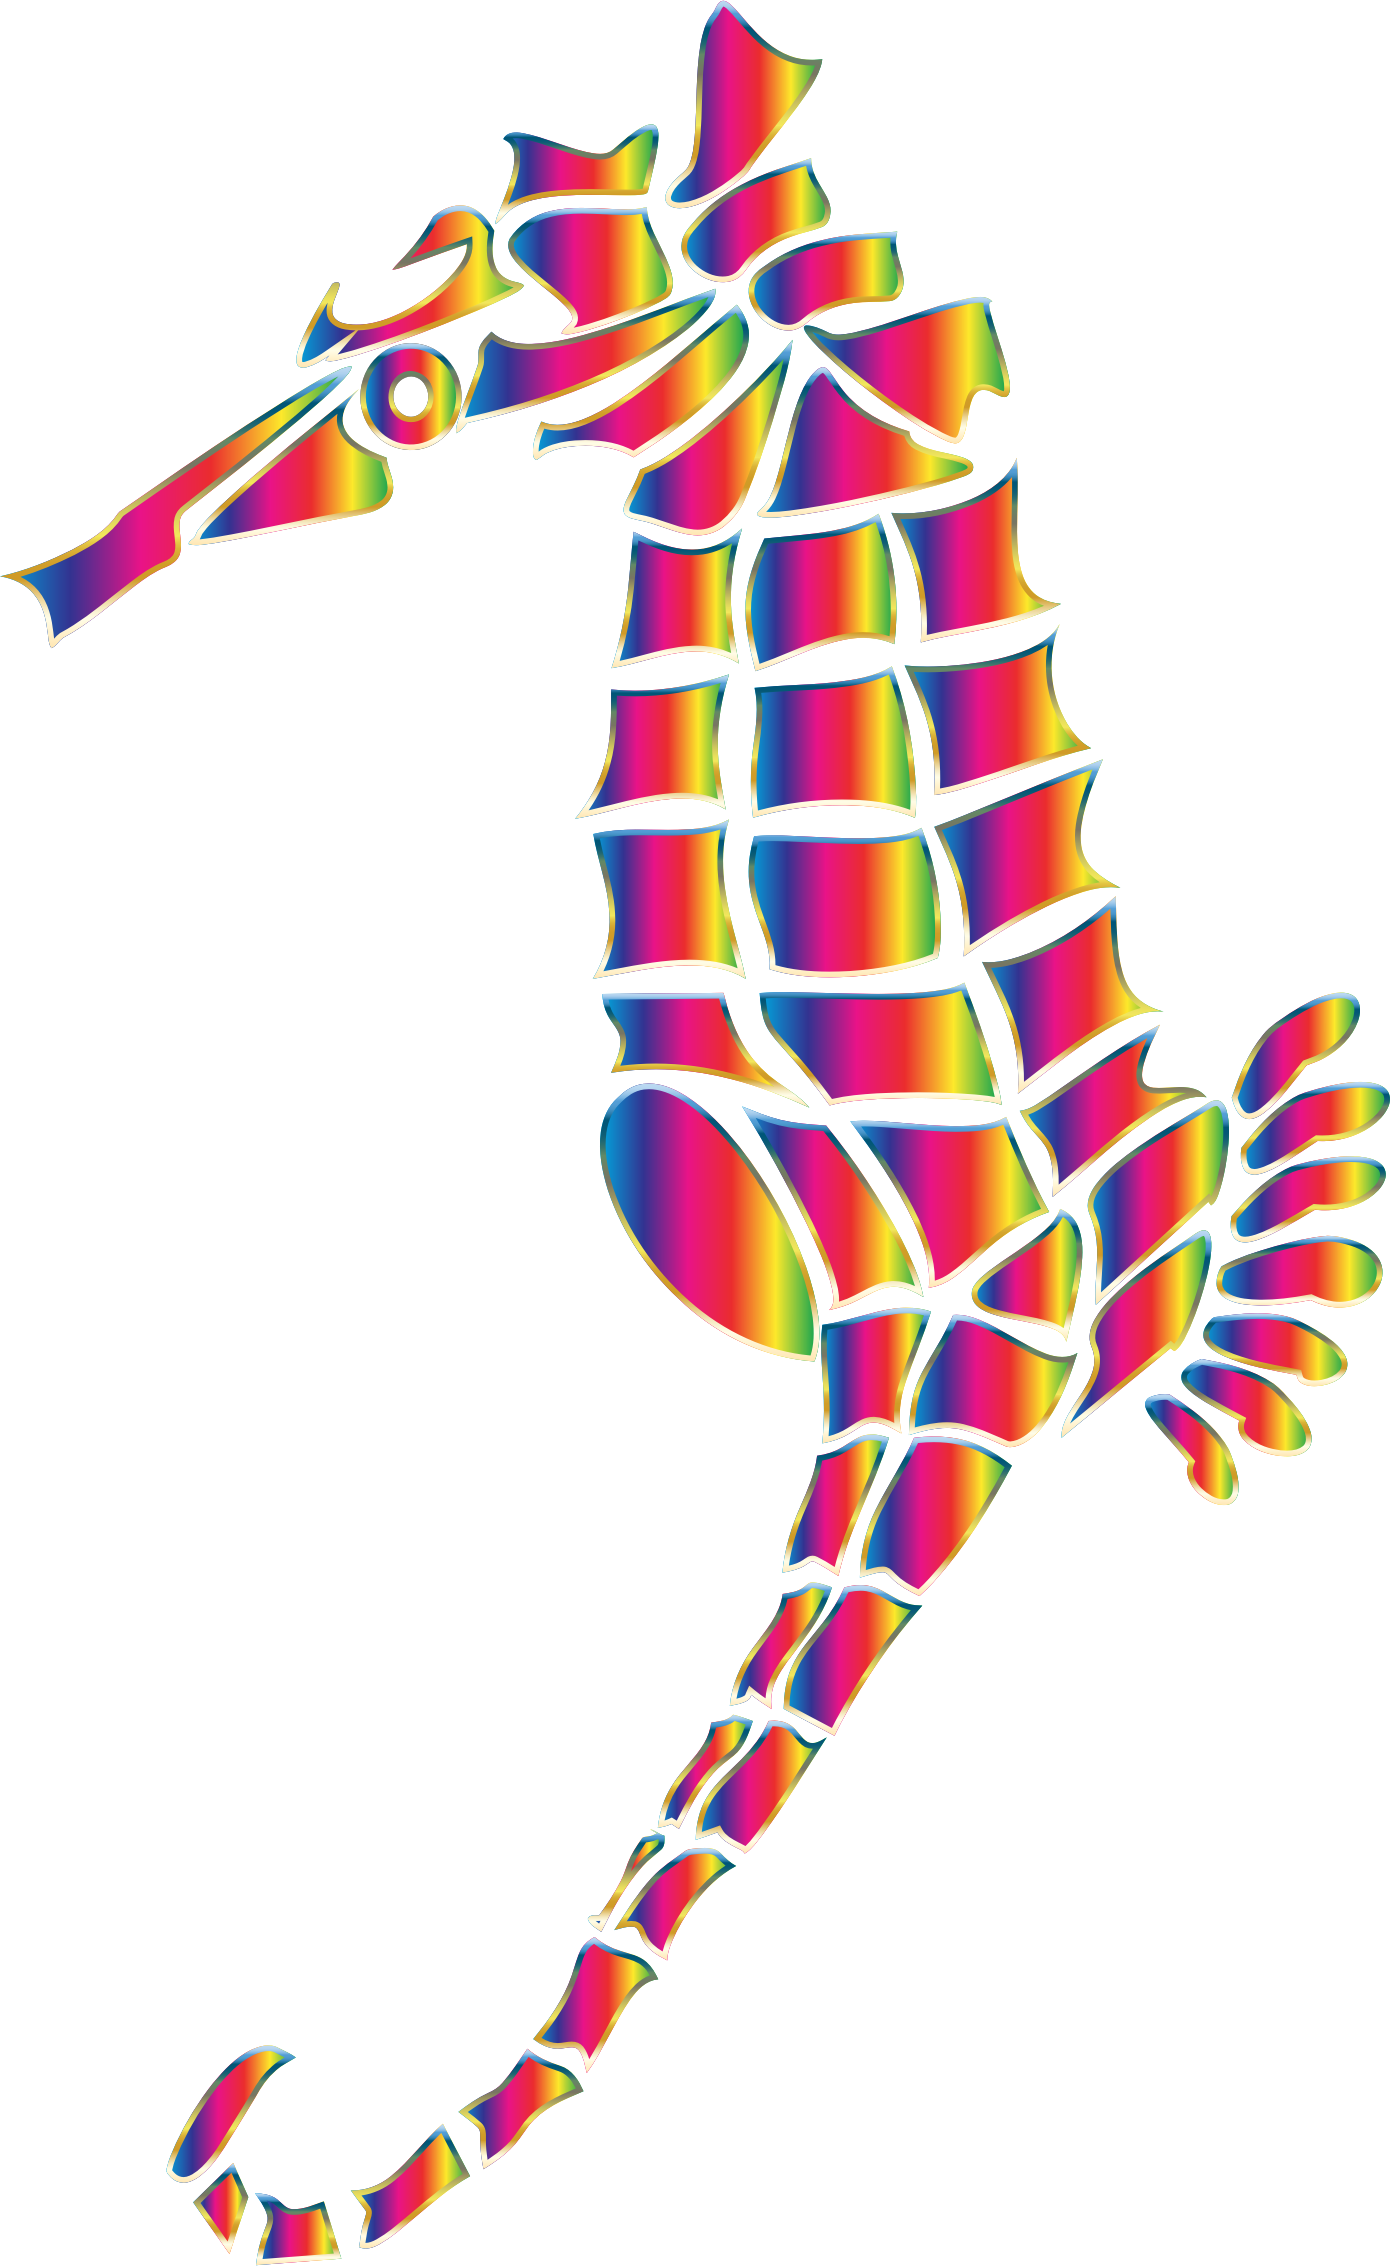 Spectral Stylized Seahorse Silhouette No Background by GDJ